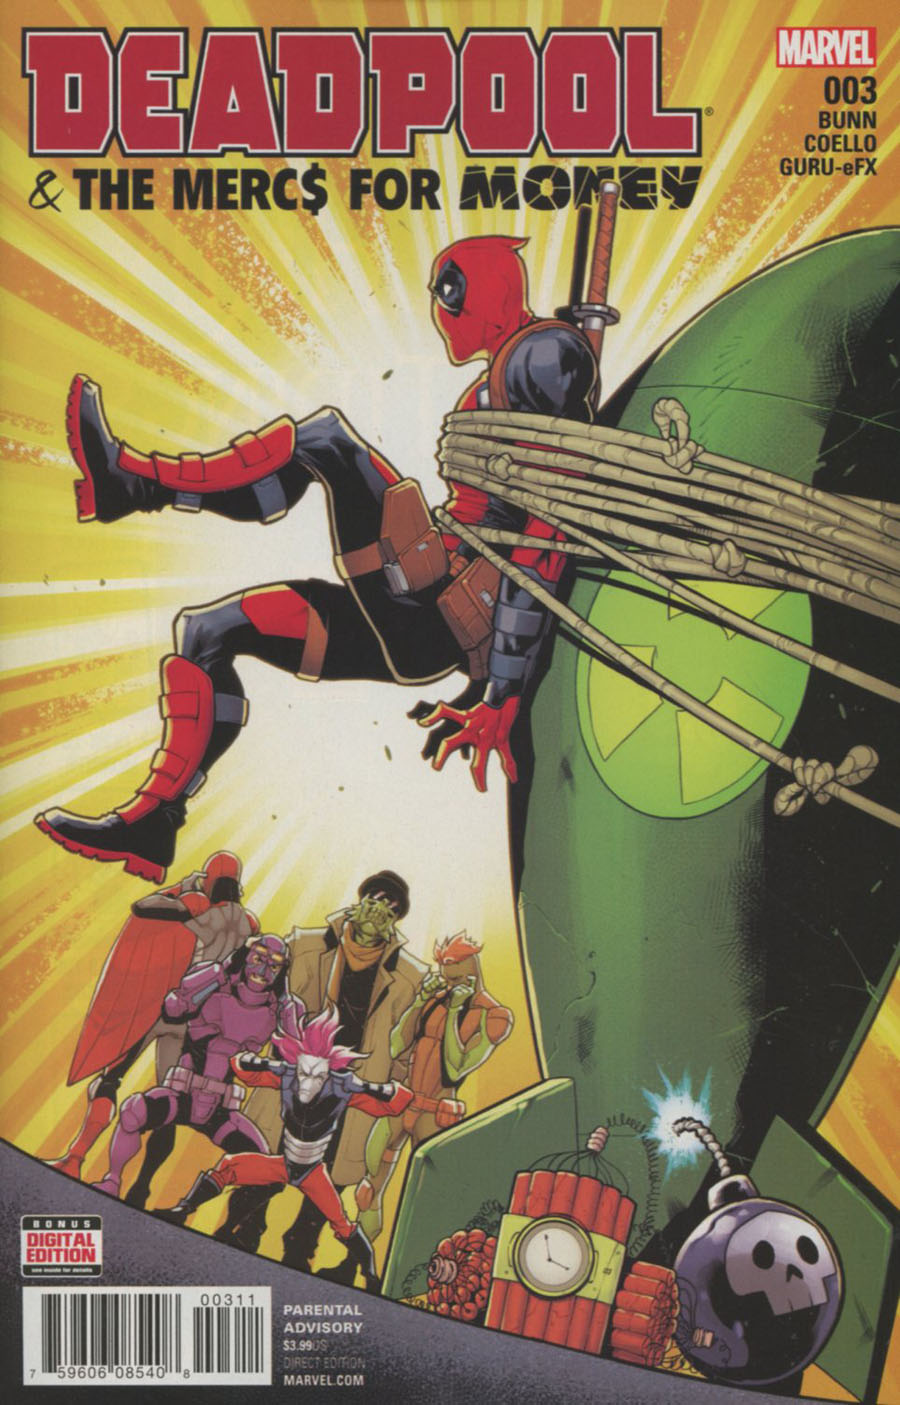 Deadpool And The Mercs For Money Vol 2 #3 Cover A Regular Iban Coello Cover